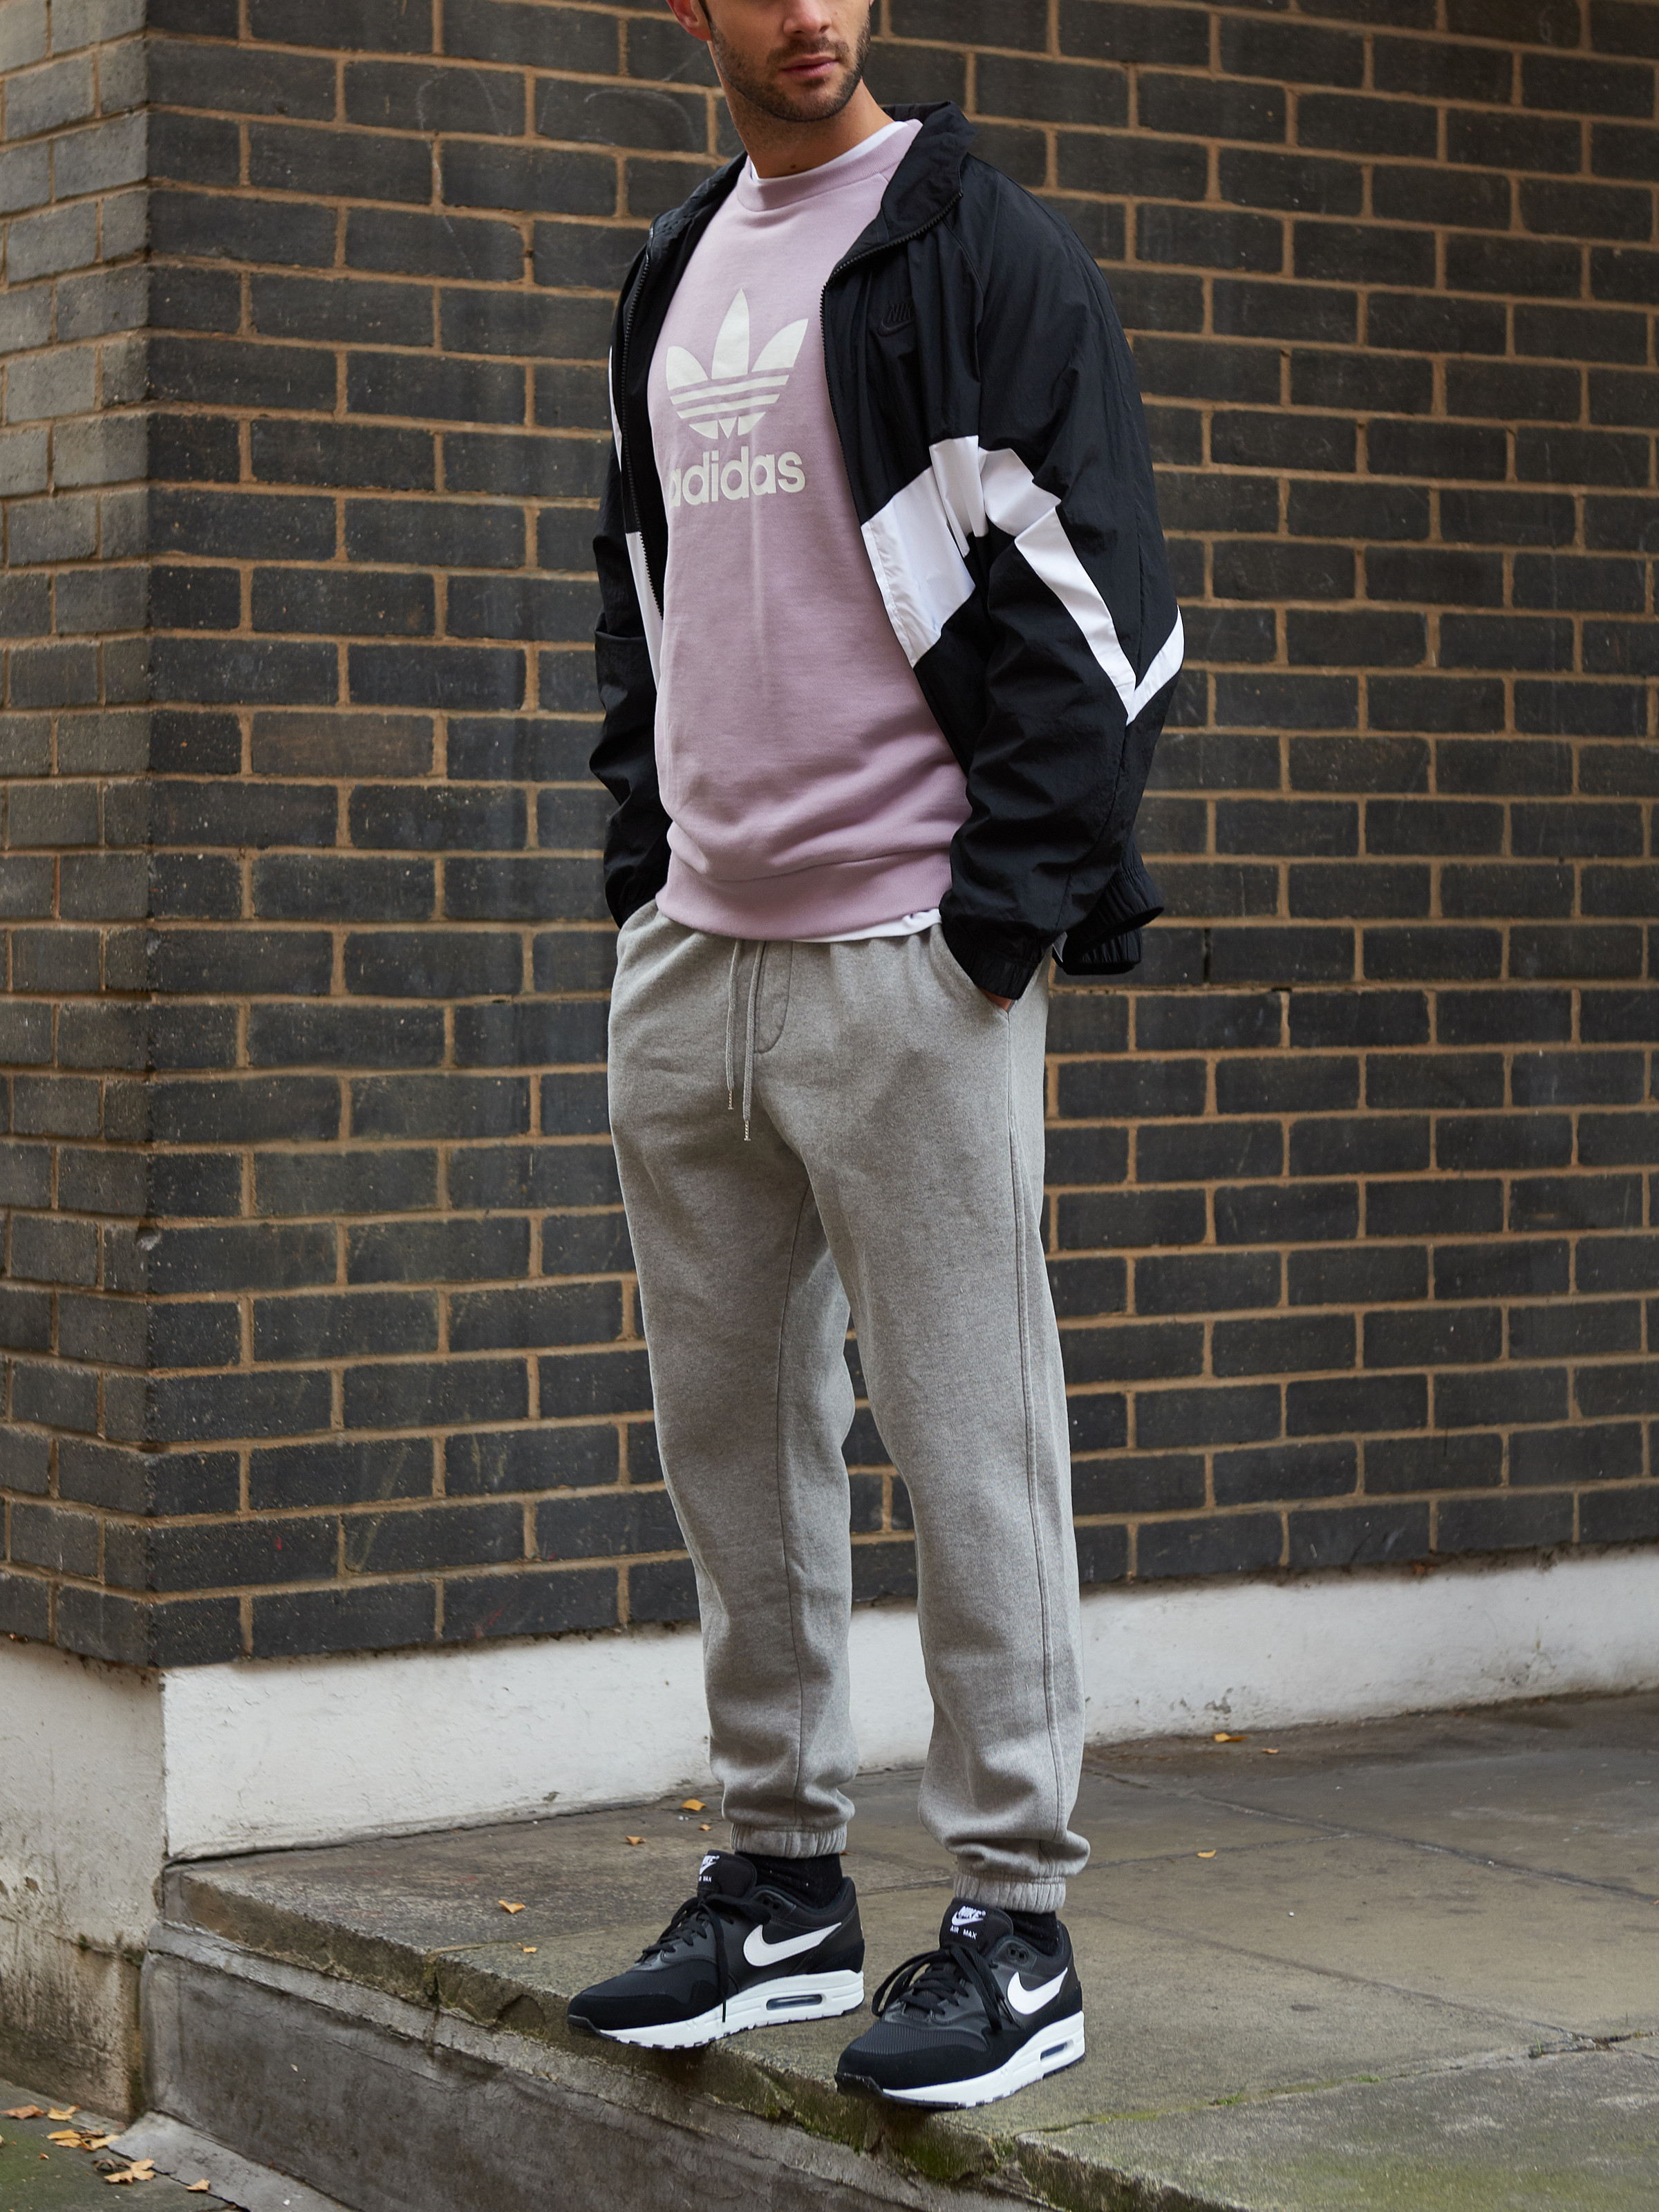 Men's outfit idea for 2021 with varsity / track jacket, purple logo / printed sweatshirt, sweatpants, black sneakers. Suitable for fall and winter.